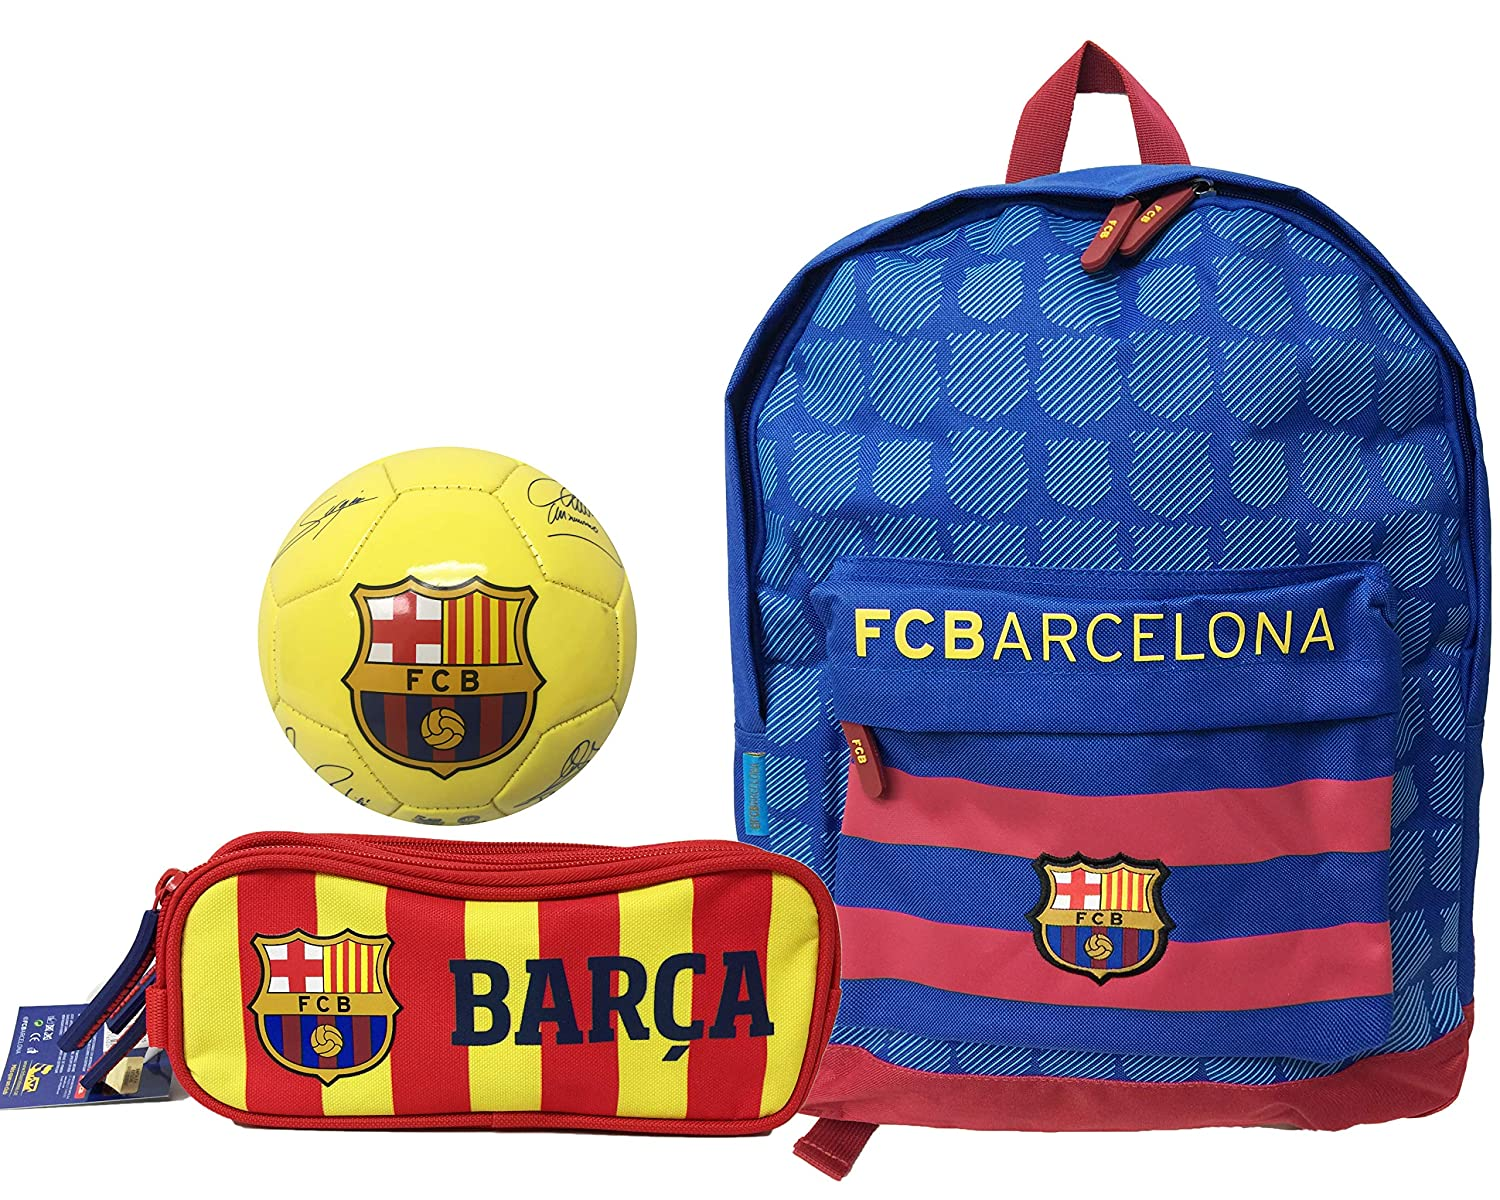 FCB Barcelona Backpack for Kids, Official